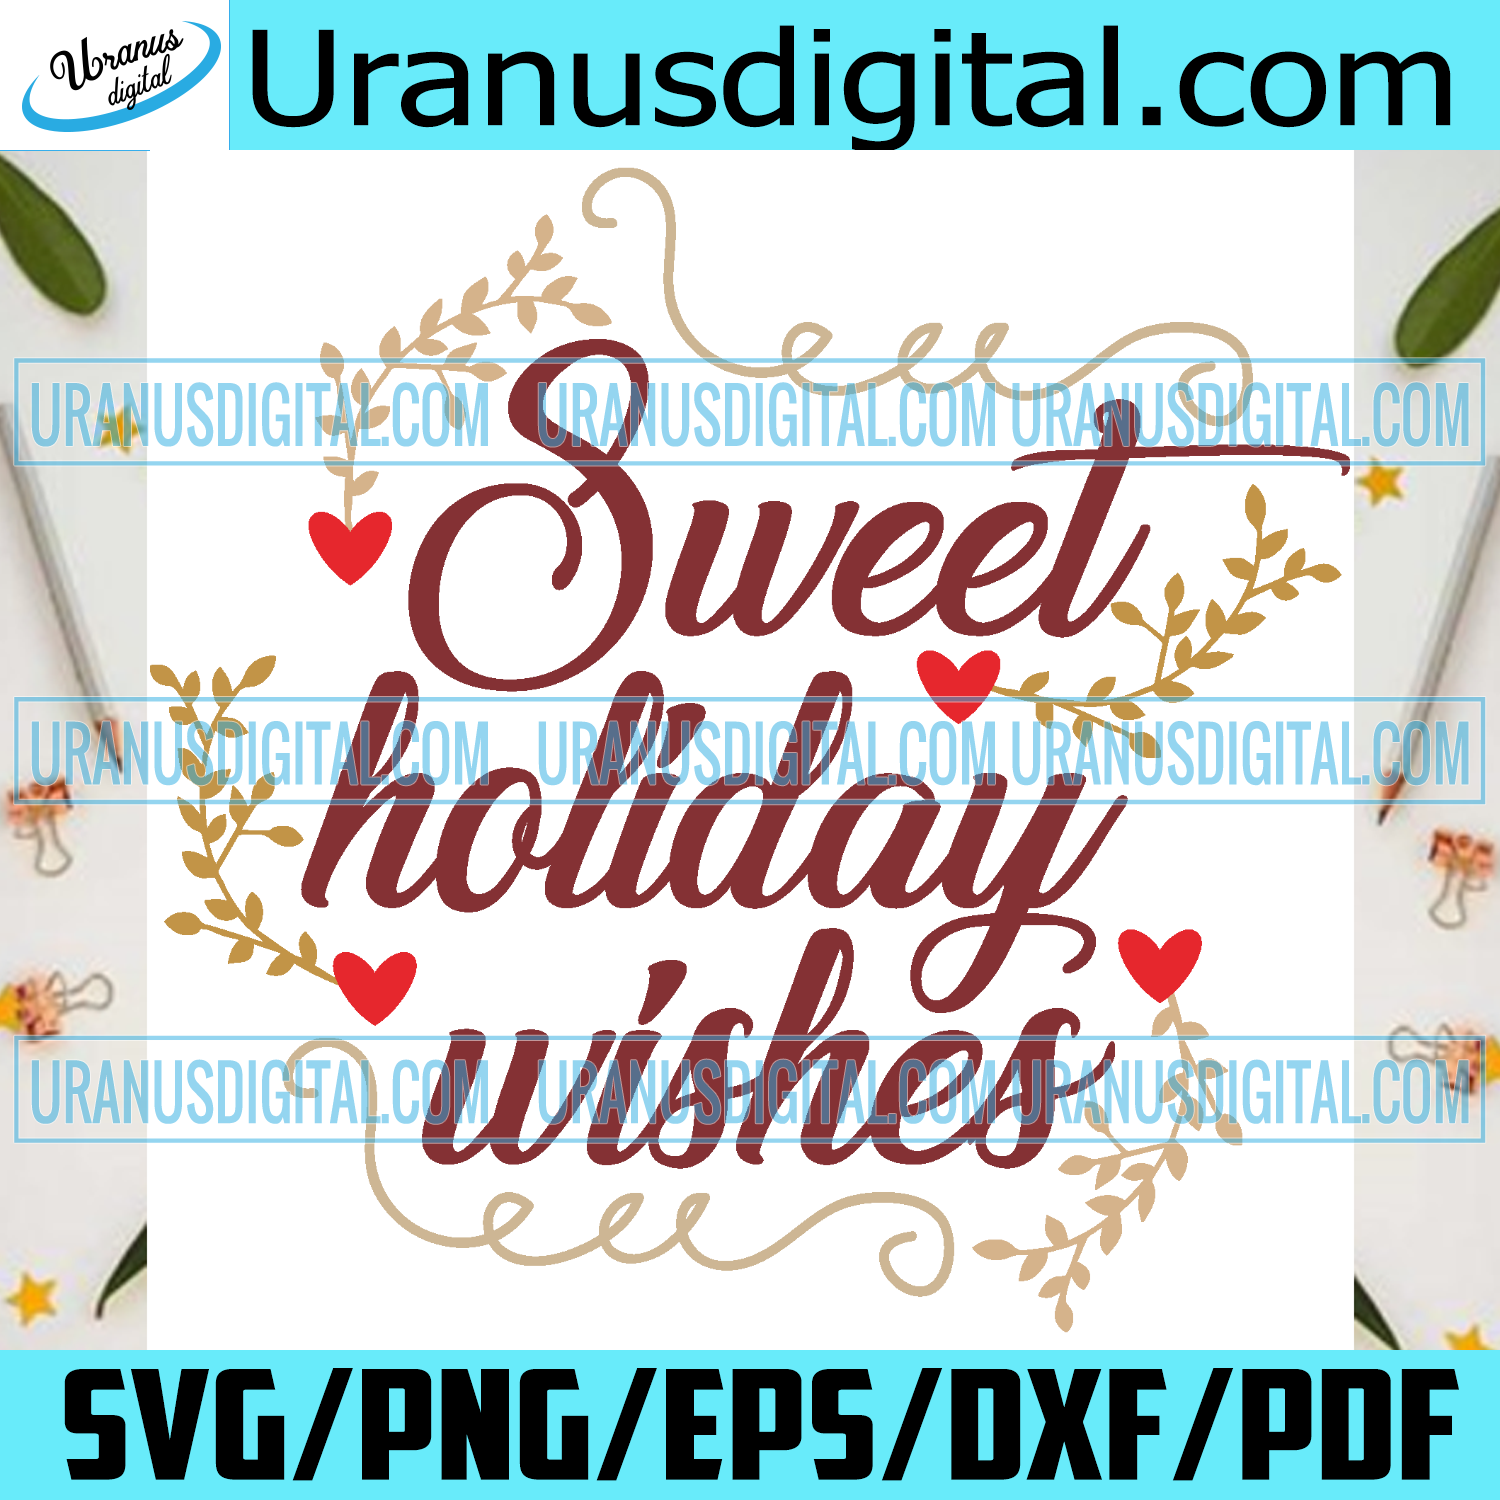 Sweet Holiday Wishes, Christmas Png, Wishes Png, Sweet Wishes Png, Christmas Gifts, Merry Christmas, Christmas Holiday, Christmas Party, Funny Christmas, Xmas Gift, Christmas Gift Ideas, Merry Christmas Png, Christmas Day Png, Christmas Decor